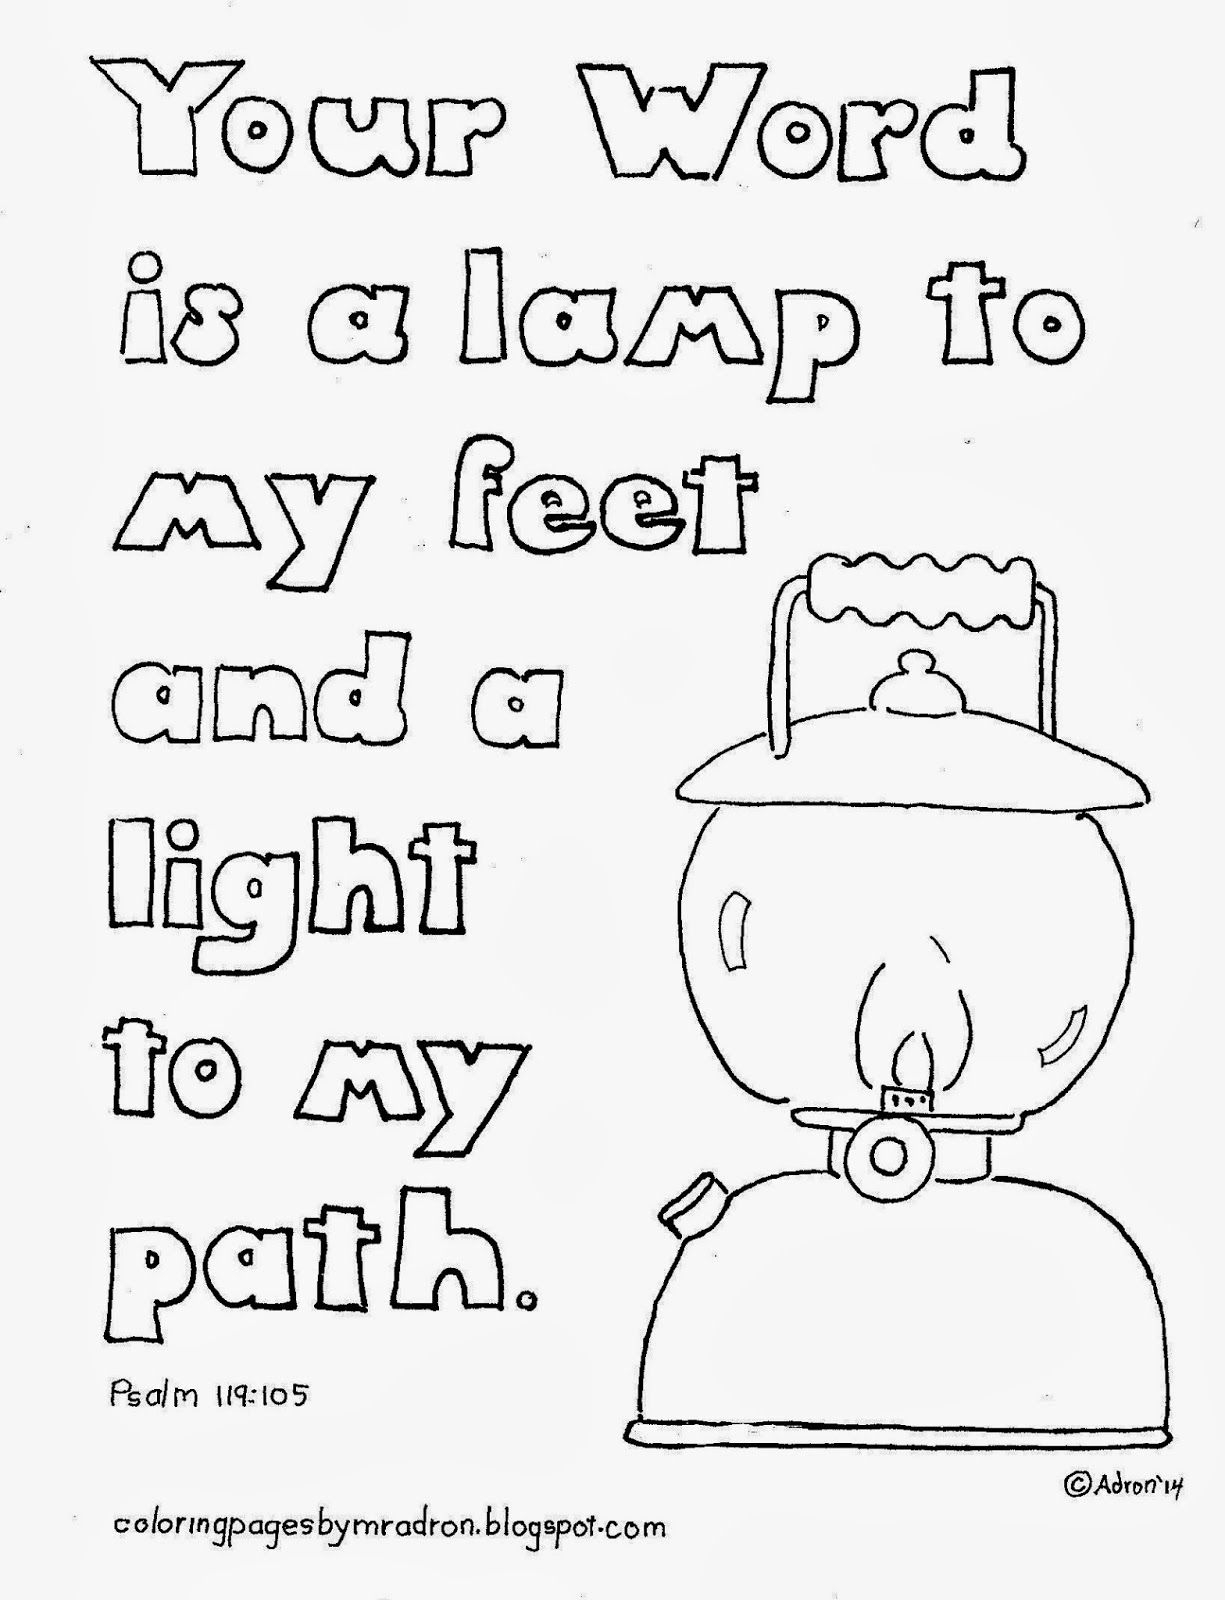 psalm 119 105 coloring pages Collection-Psalm 139 Coloring Page Coloring Pages for Kids by Mr Adron Your Word is A Lamp 17-h